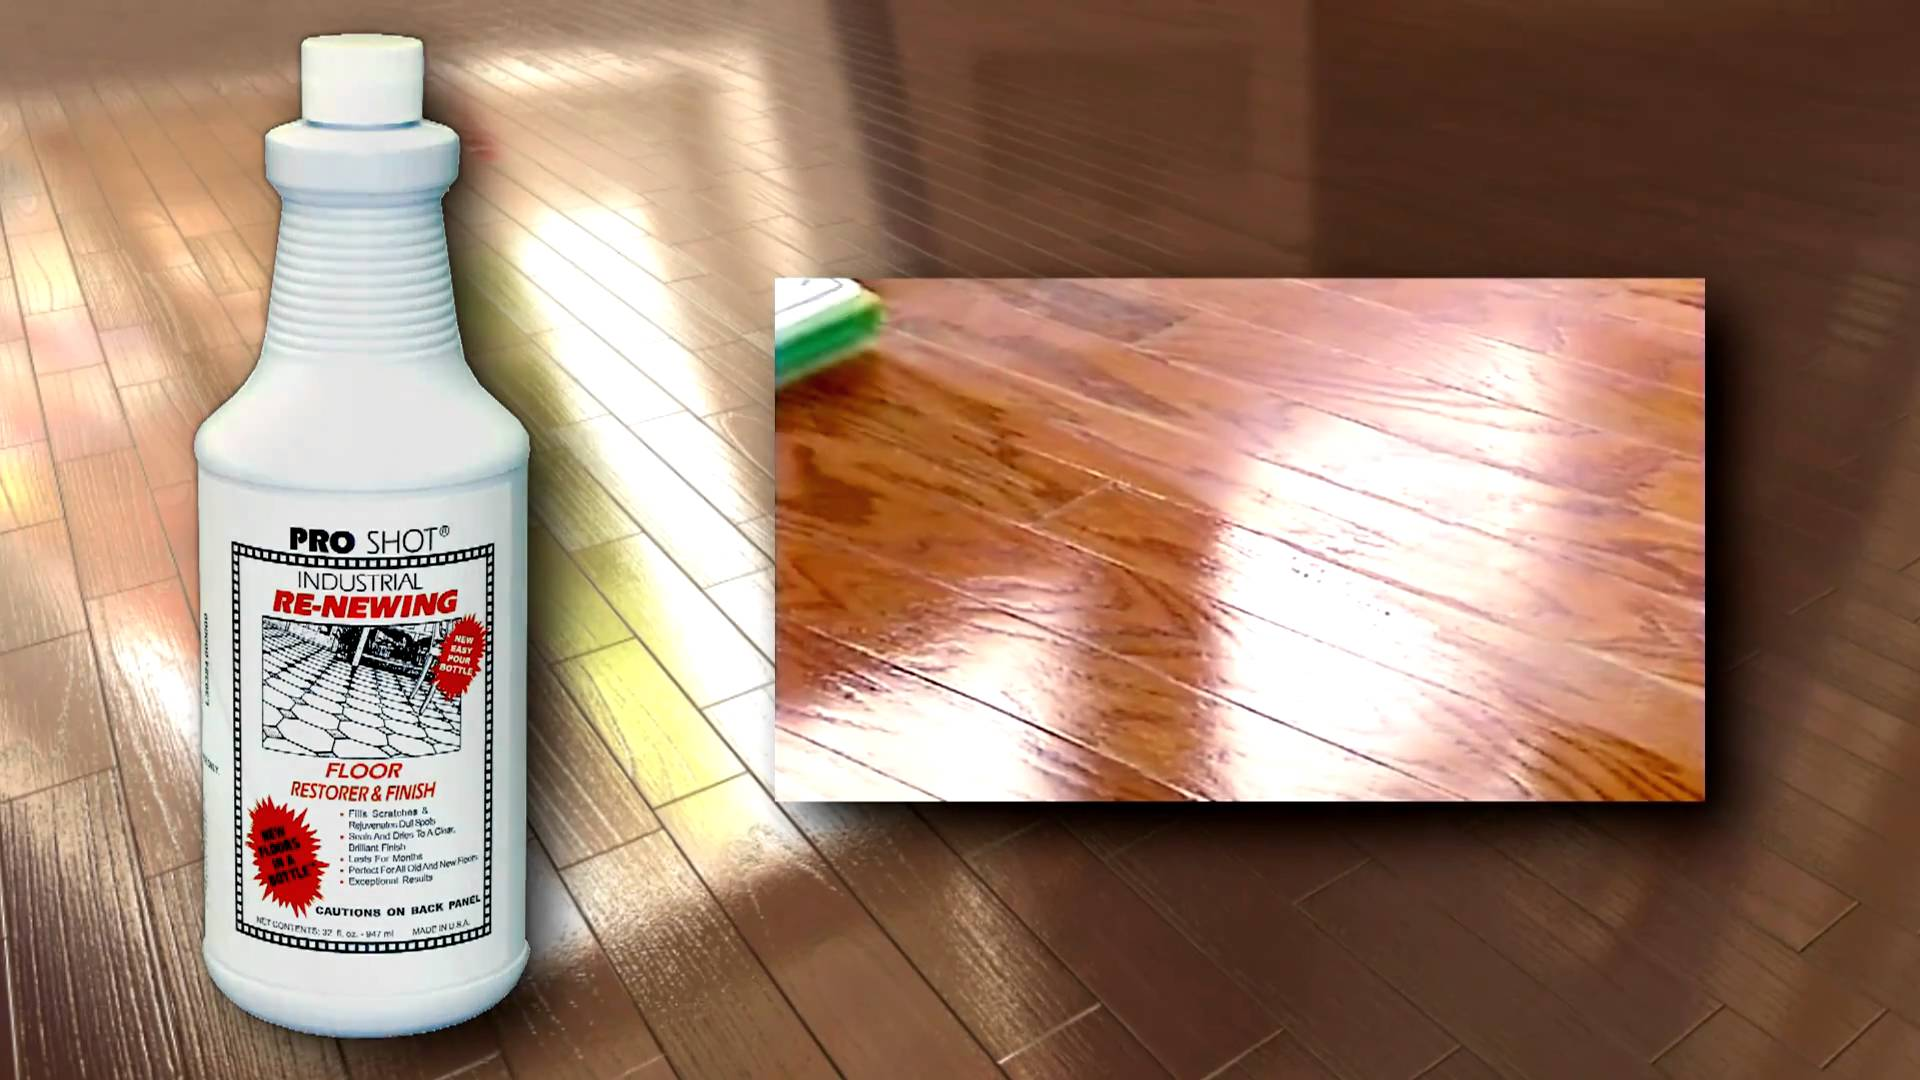 Attractive Pro Shot Is The Professional Choice For Quick And Easy Floor Shine Restoring.  The Product Comes In Three Sizes, But For The Average Homeowner Either The  ...